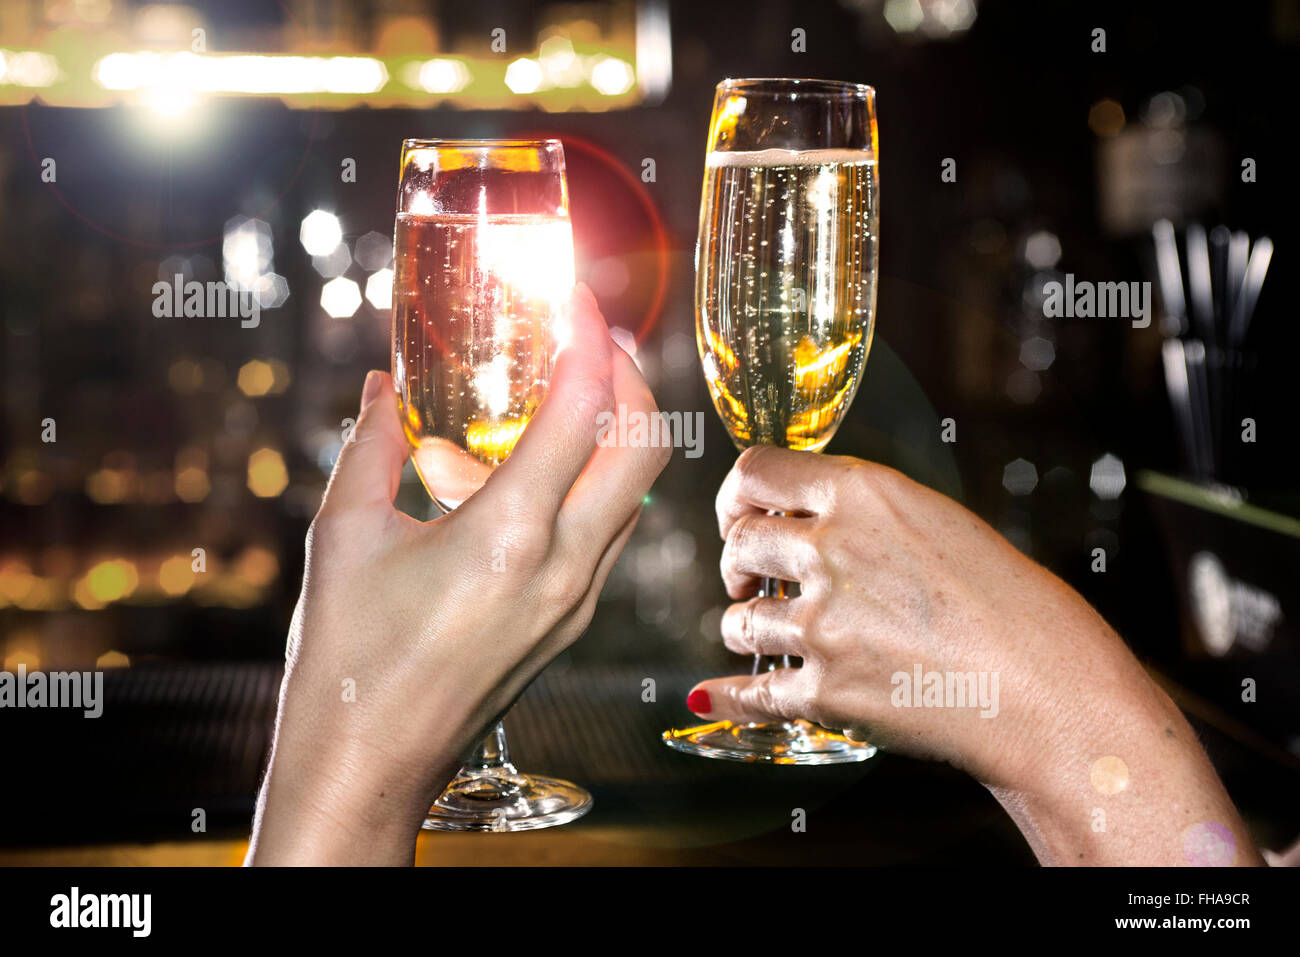 Drinking champagne, hands and glasses - Stock Image